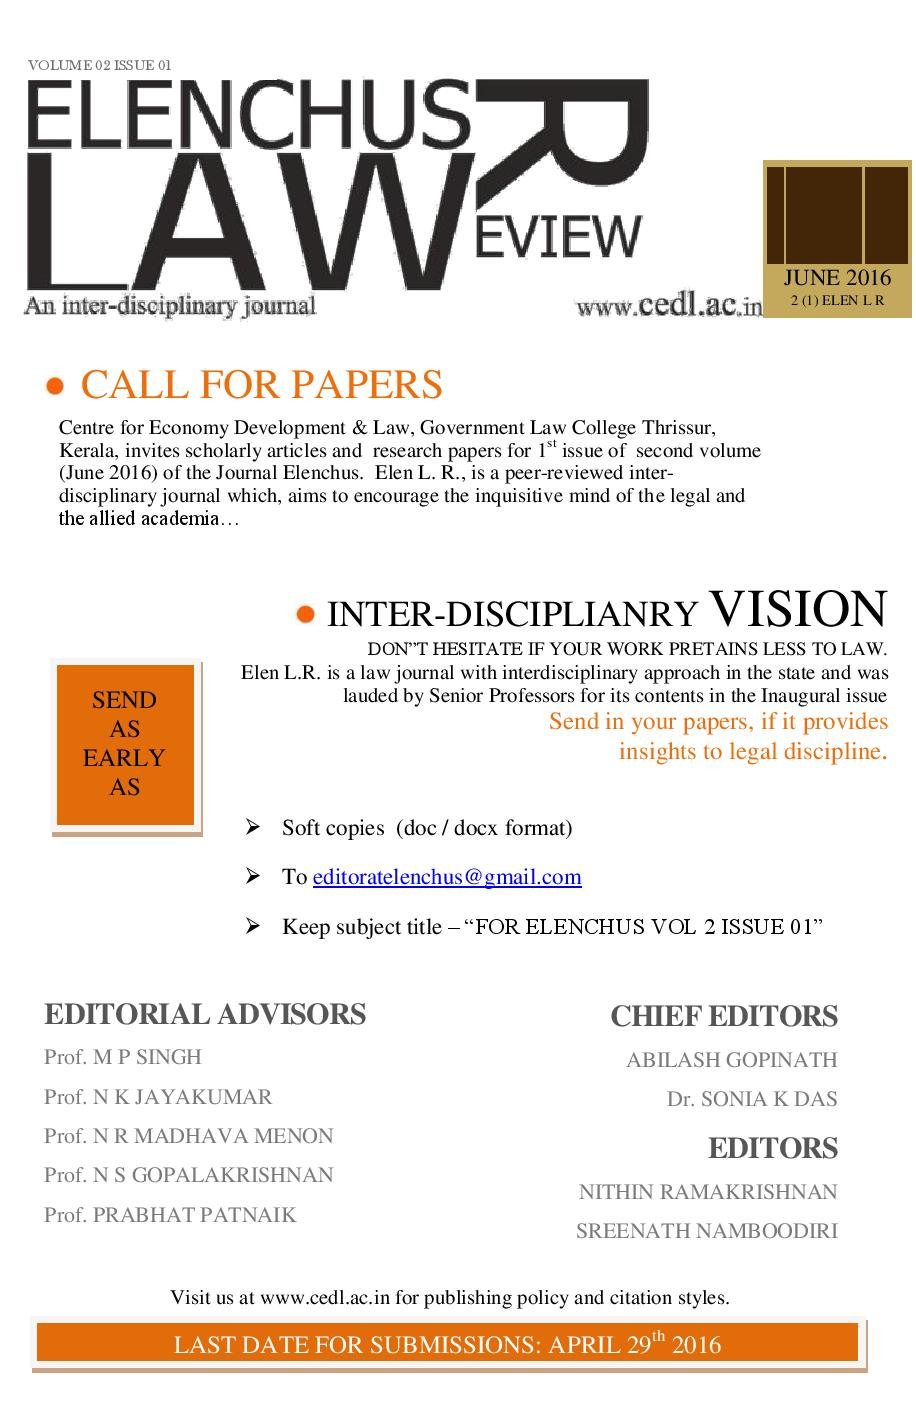 Call for Papers: Elenchus Law Review Vol 2 Issue 1